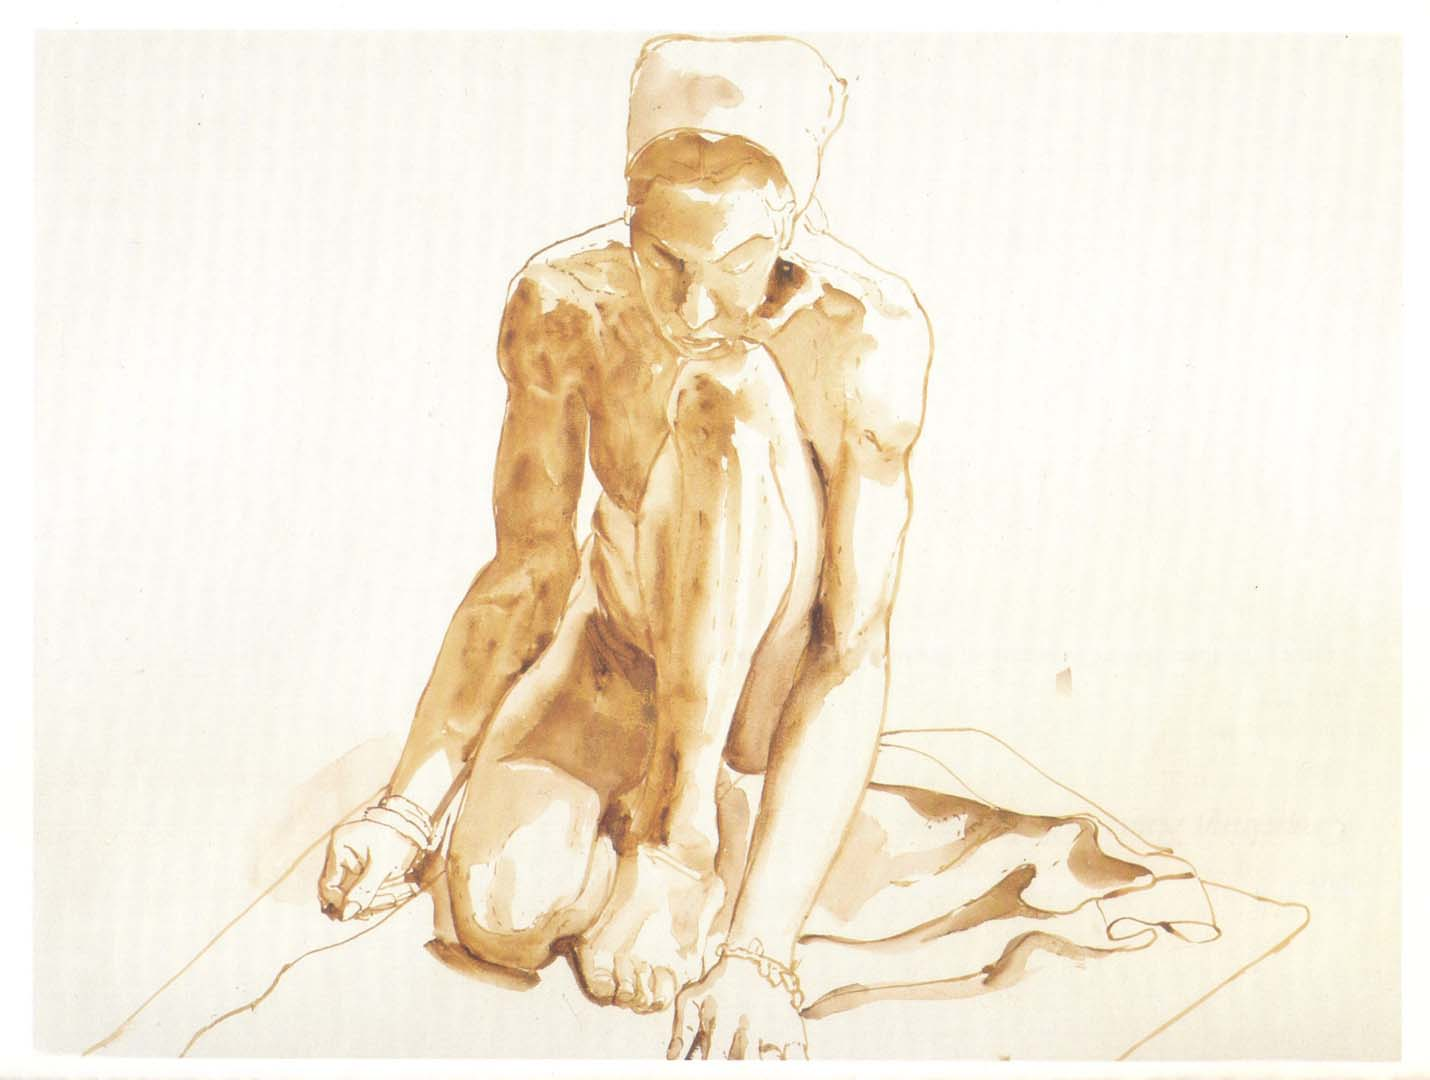 1967 Kneeling Figure Sepia Wash on Paper 22 x 30